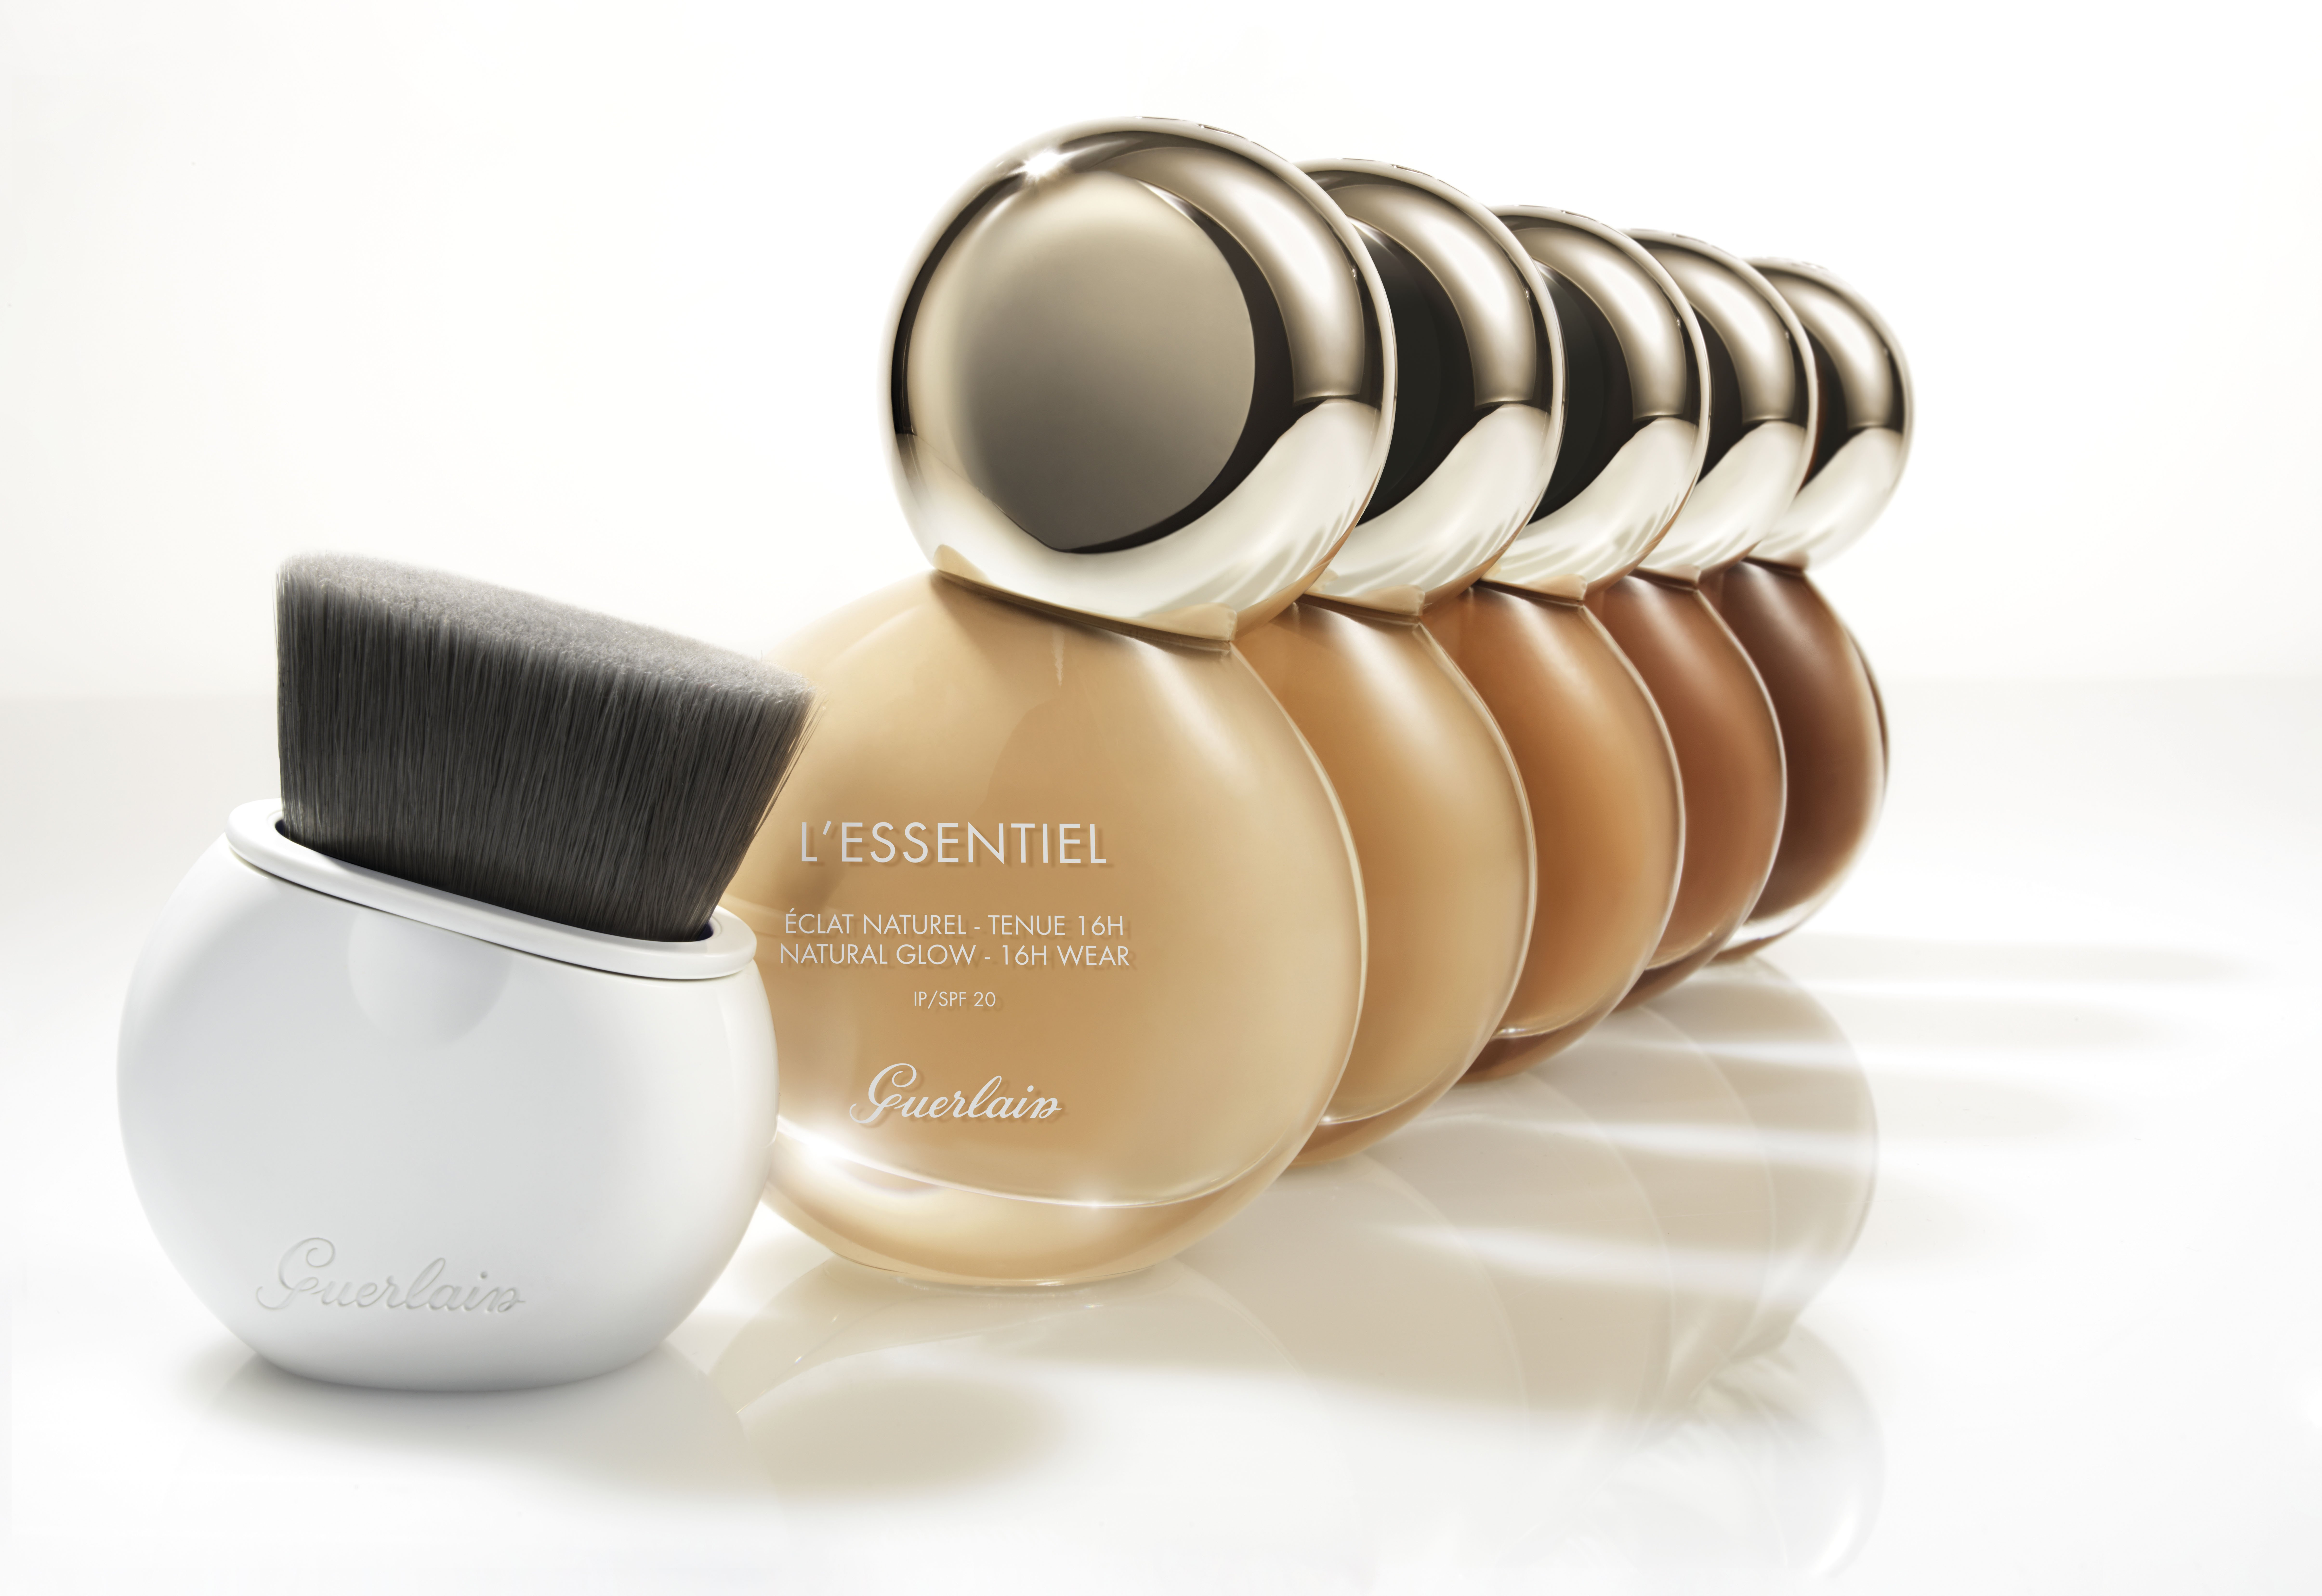 L'Essentiel: Guerlain's New Foundation That Promises a Flawless Complexion and a Natural Finish.